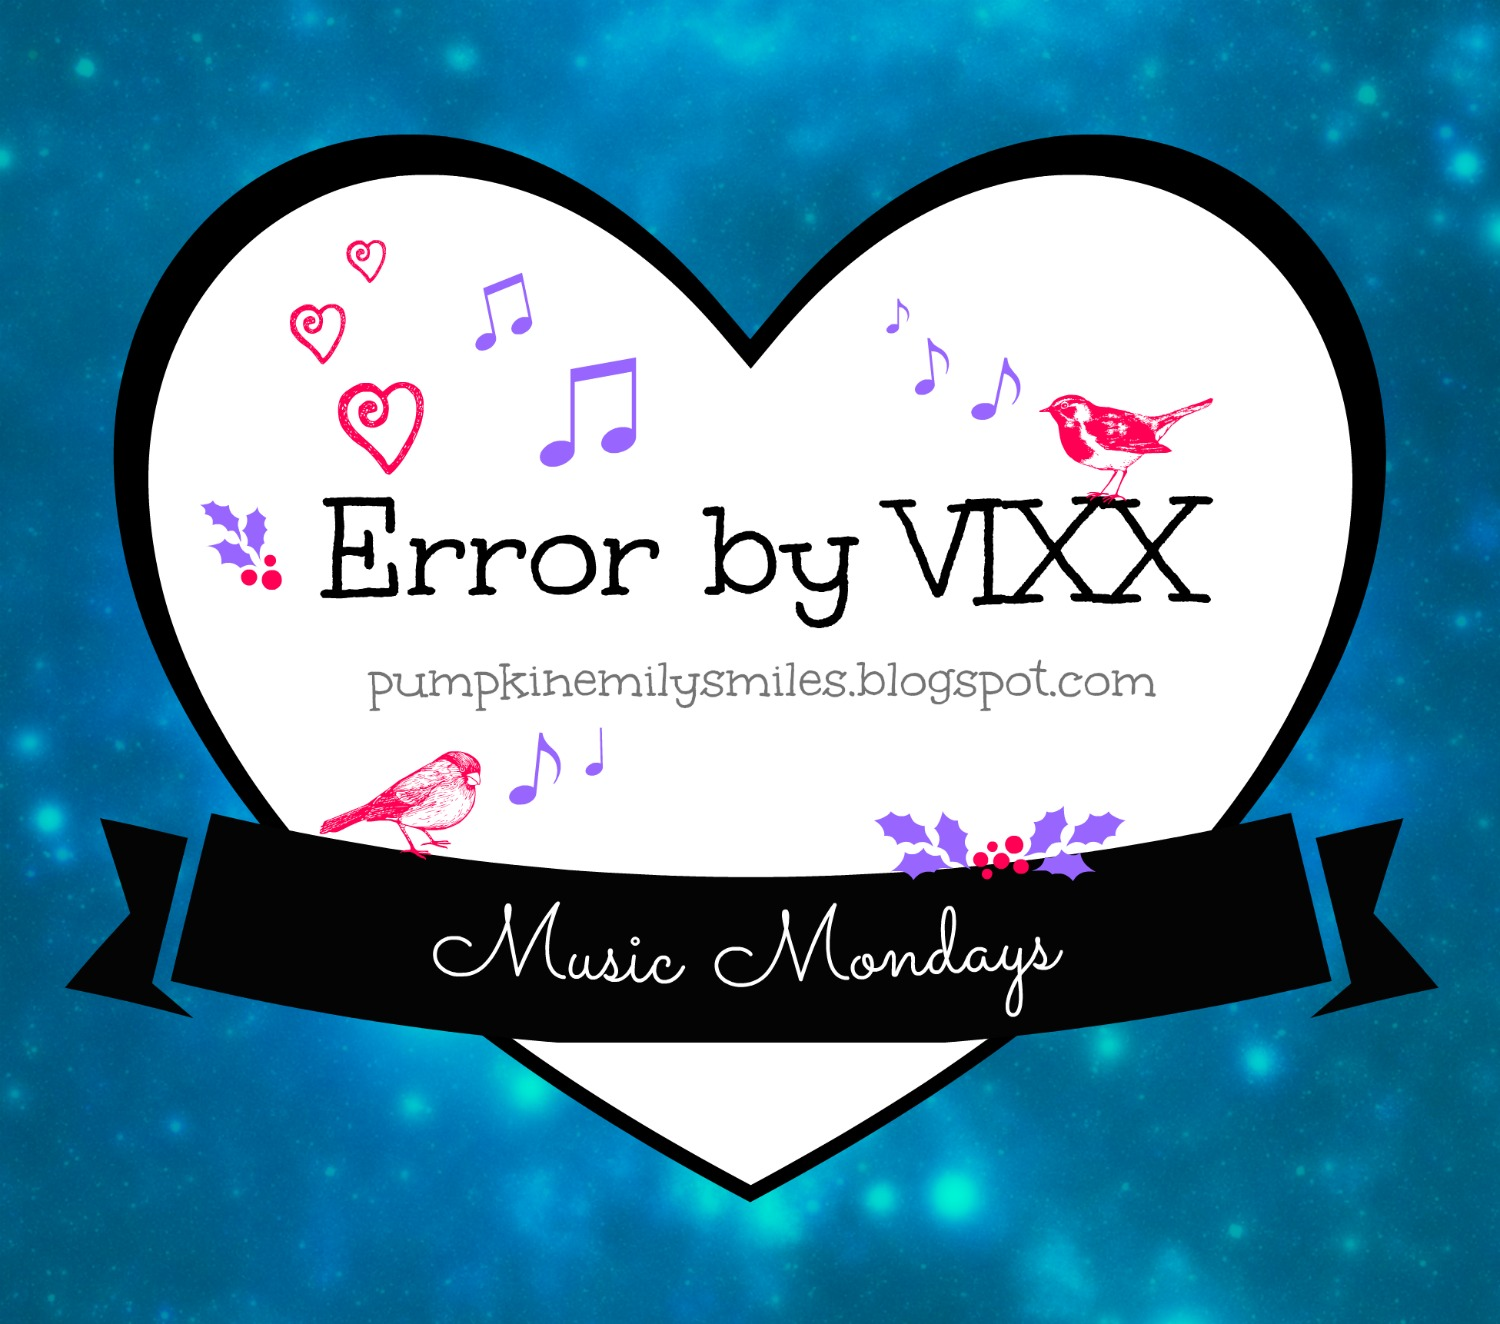 Error by VIXX Music Mondays